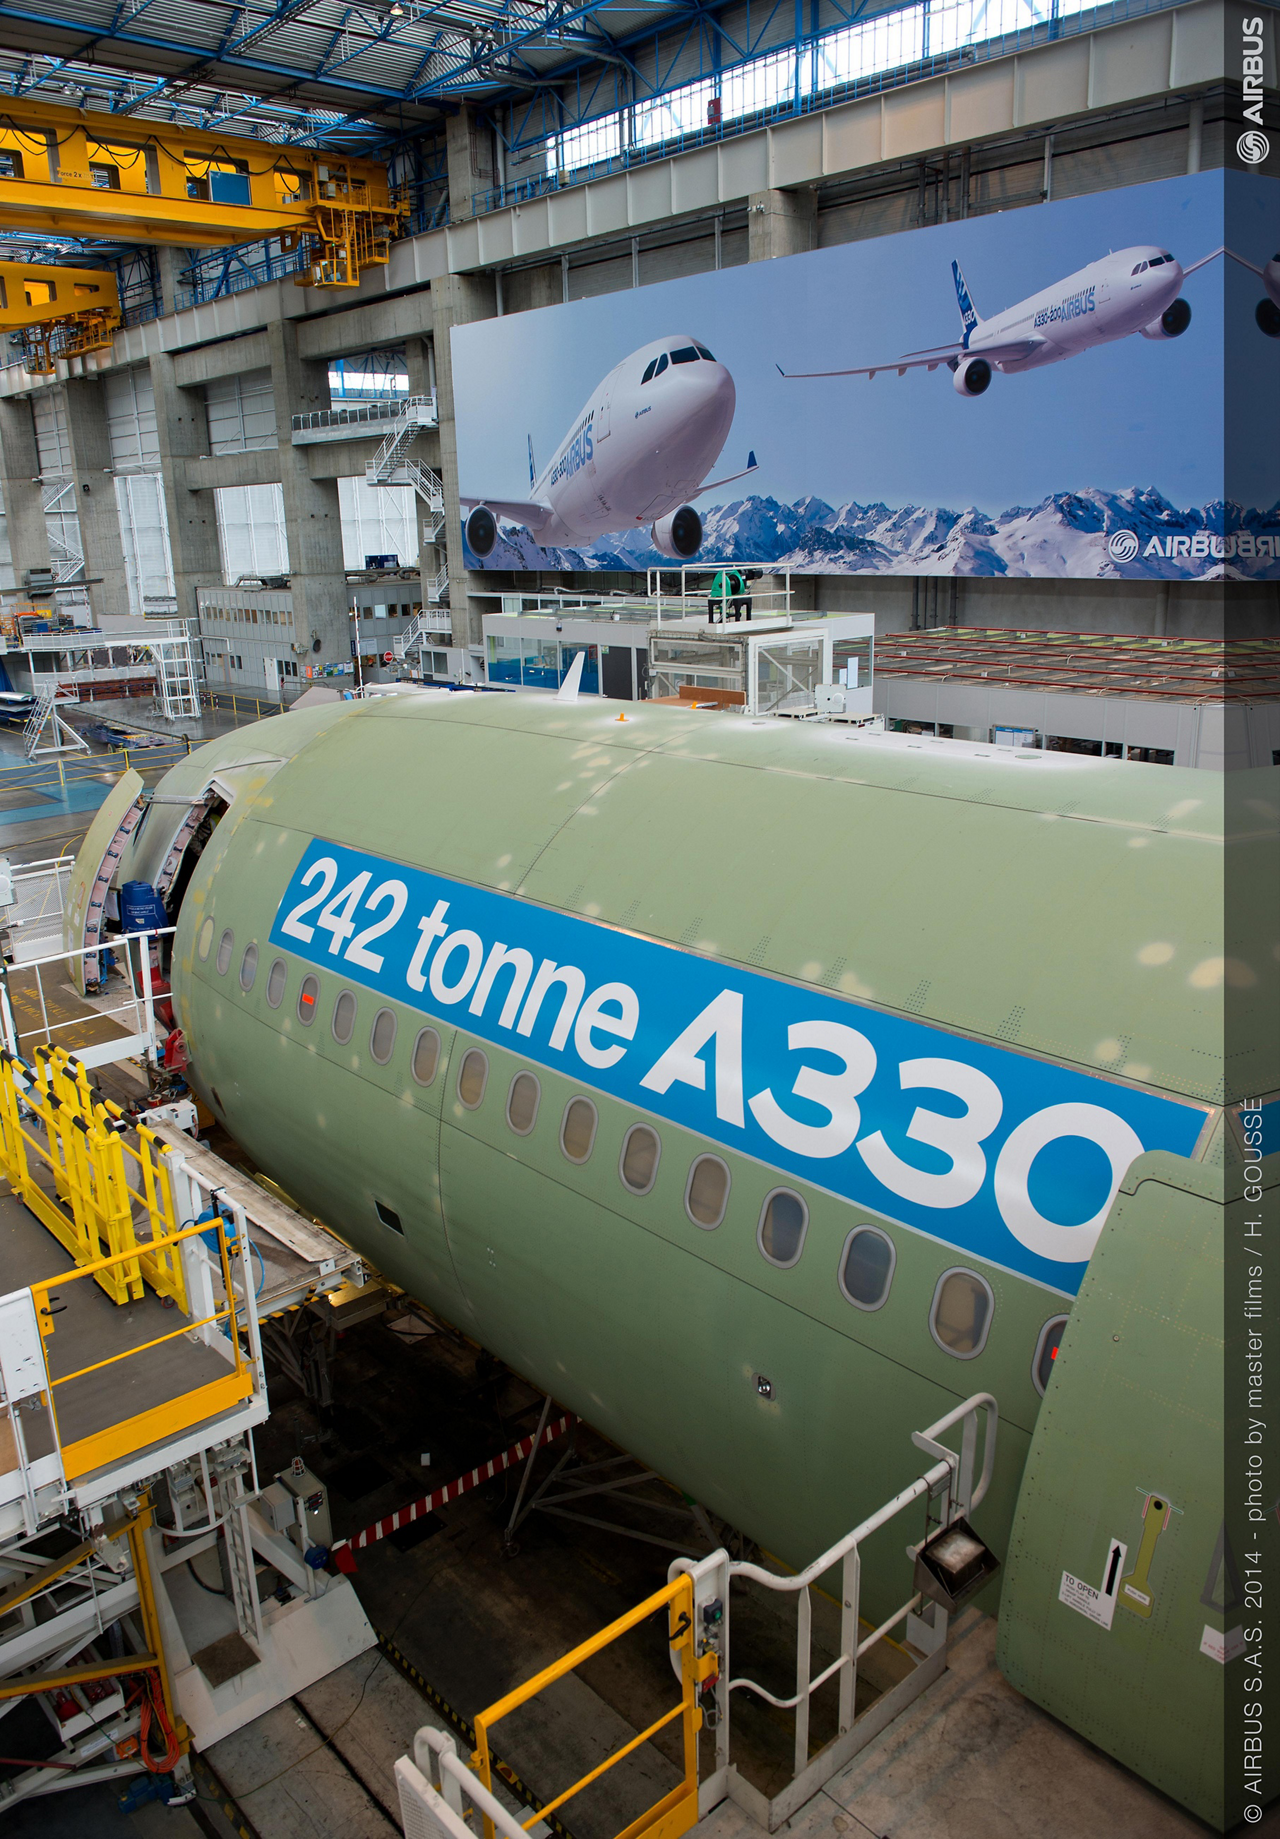 The first 242 tonne maximum takeoff weight A330-300 jetliner will be used for certification flight trials, with the second aircraft of this type planned for delivery to launch customer Delta Air Lines in the second quarter of 2015